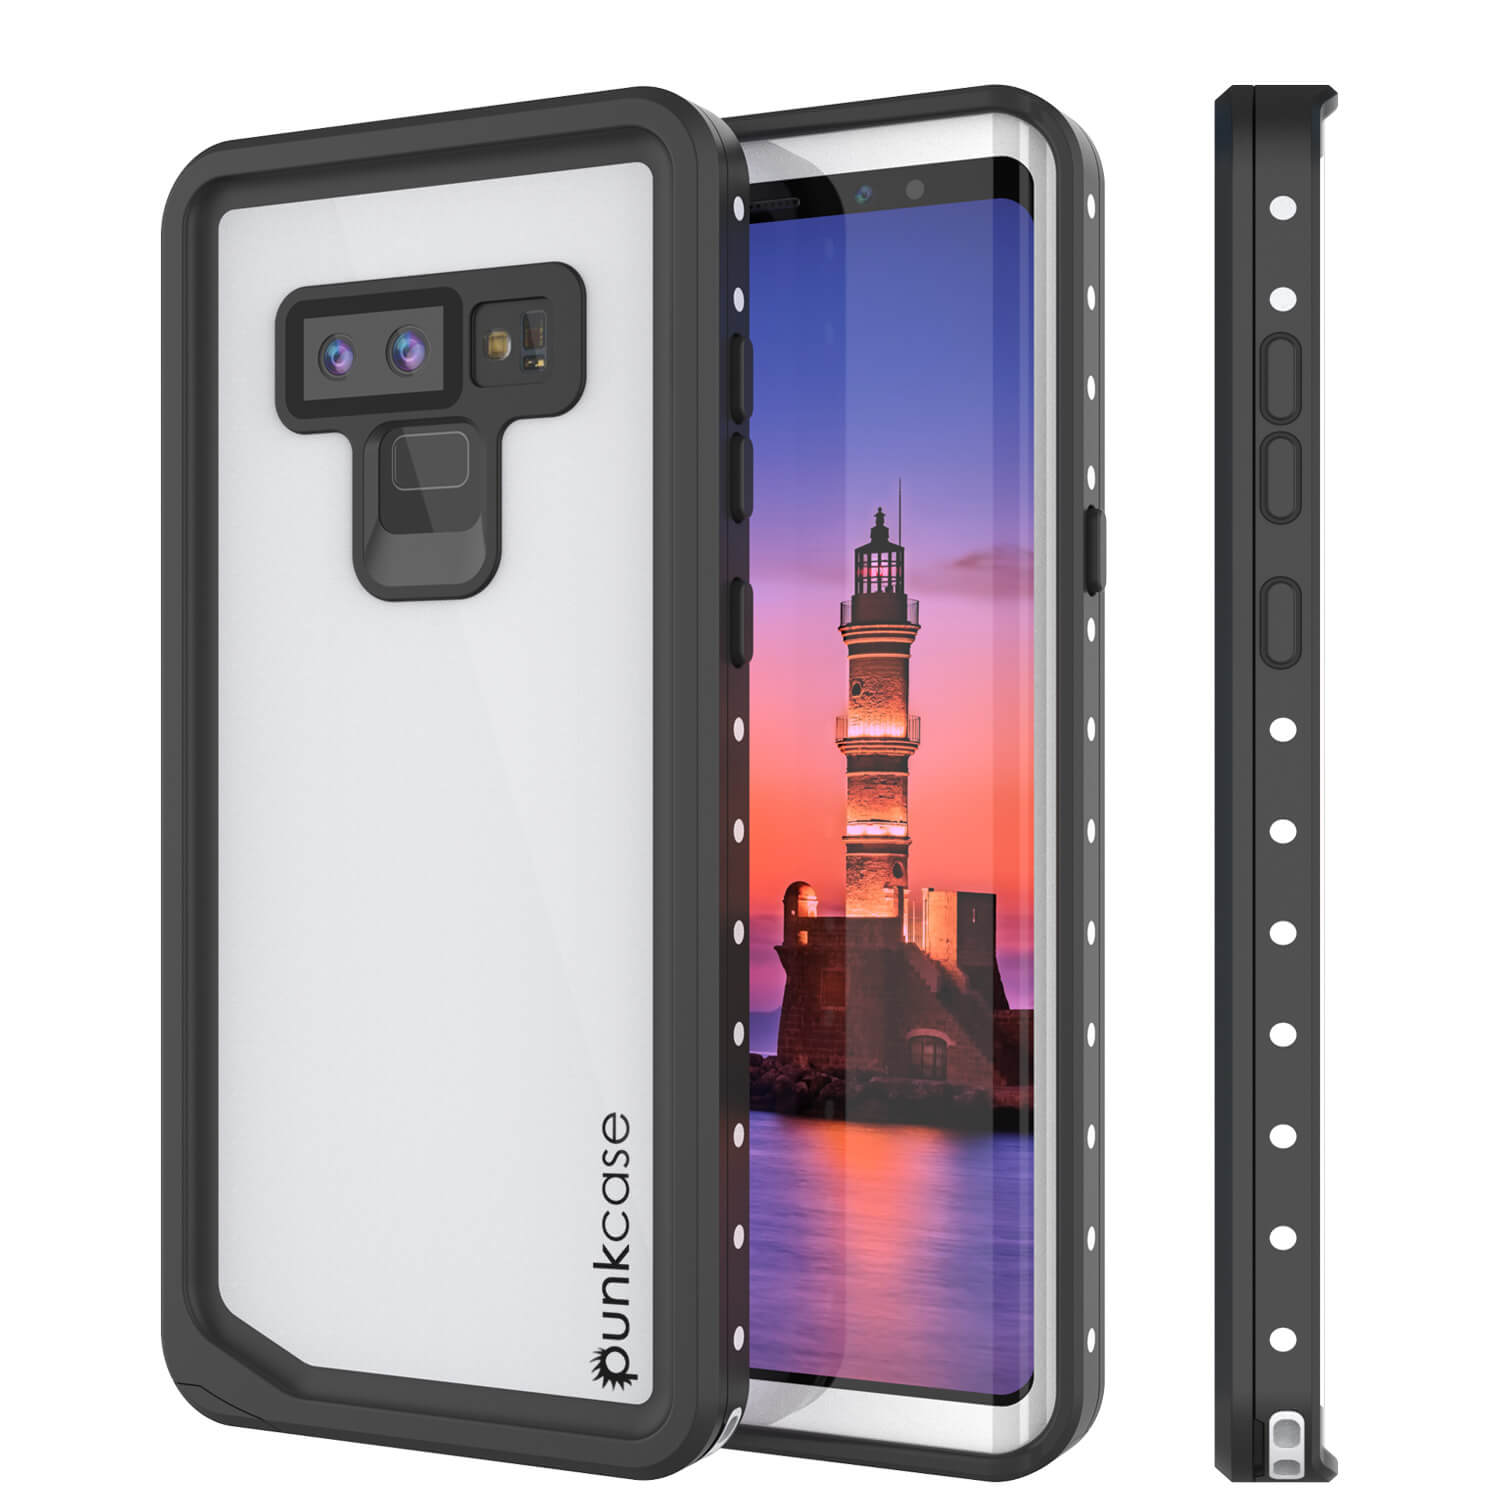 Galaxy Note 9 Waterproof Case, Punkcase Studstar White Thin Armor Cover